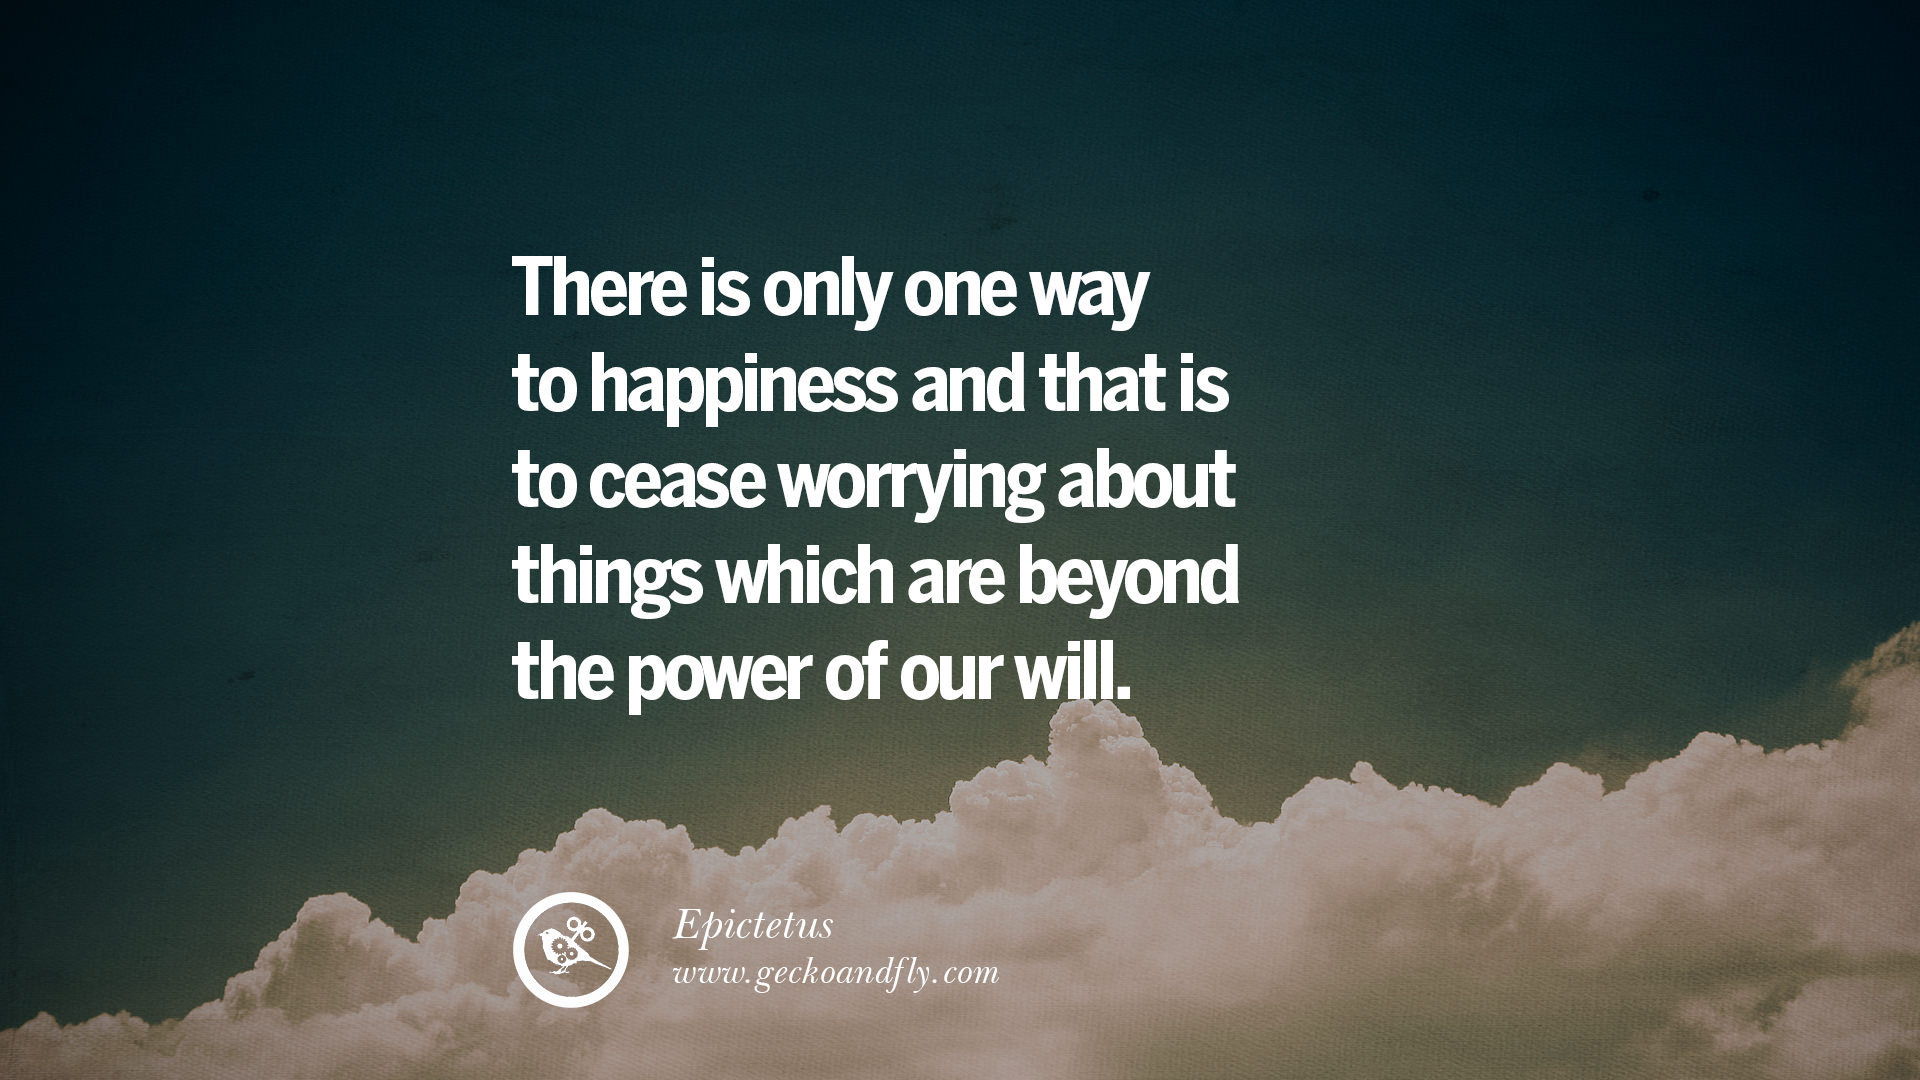 Quote About Happiness 21 Quotes About Pursuit Of Happiness To Change Your Thinking